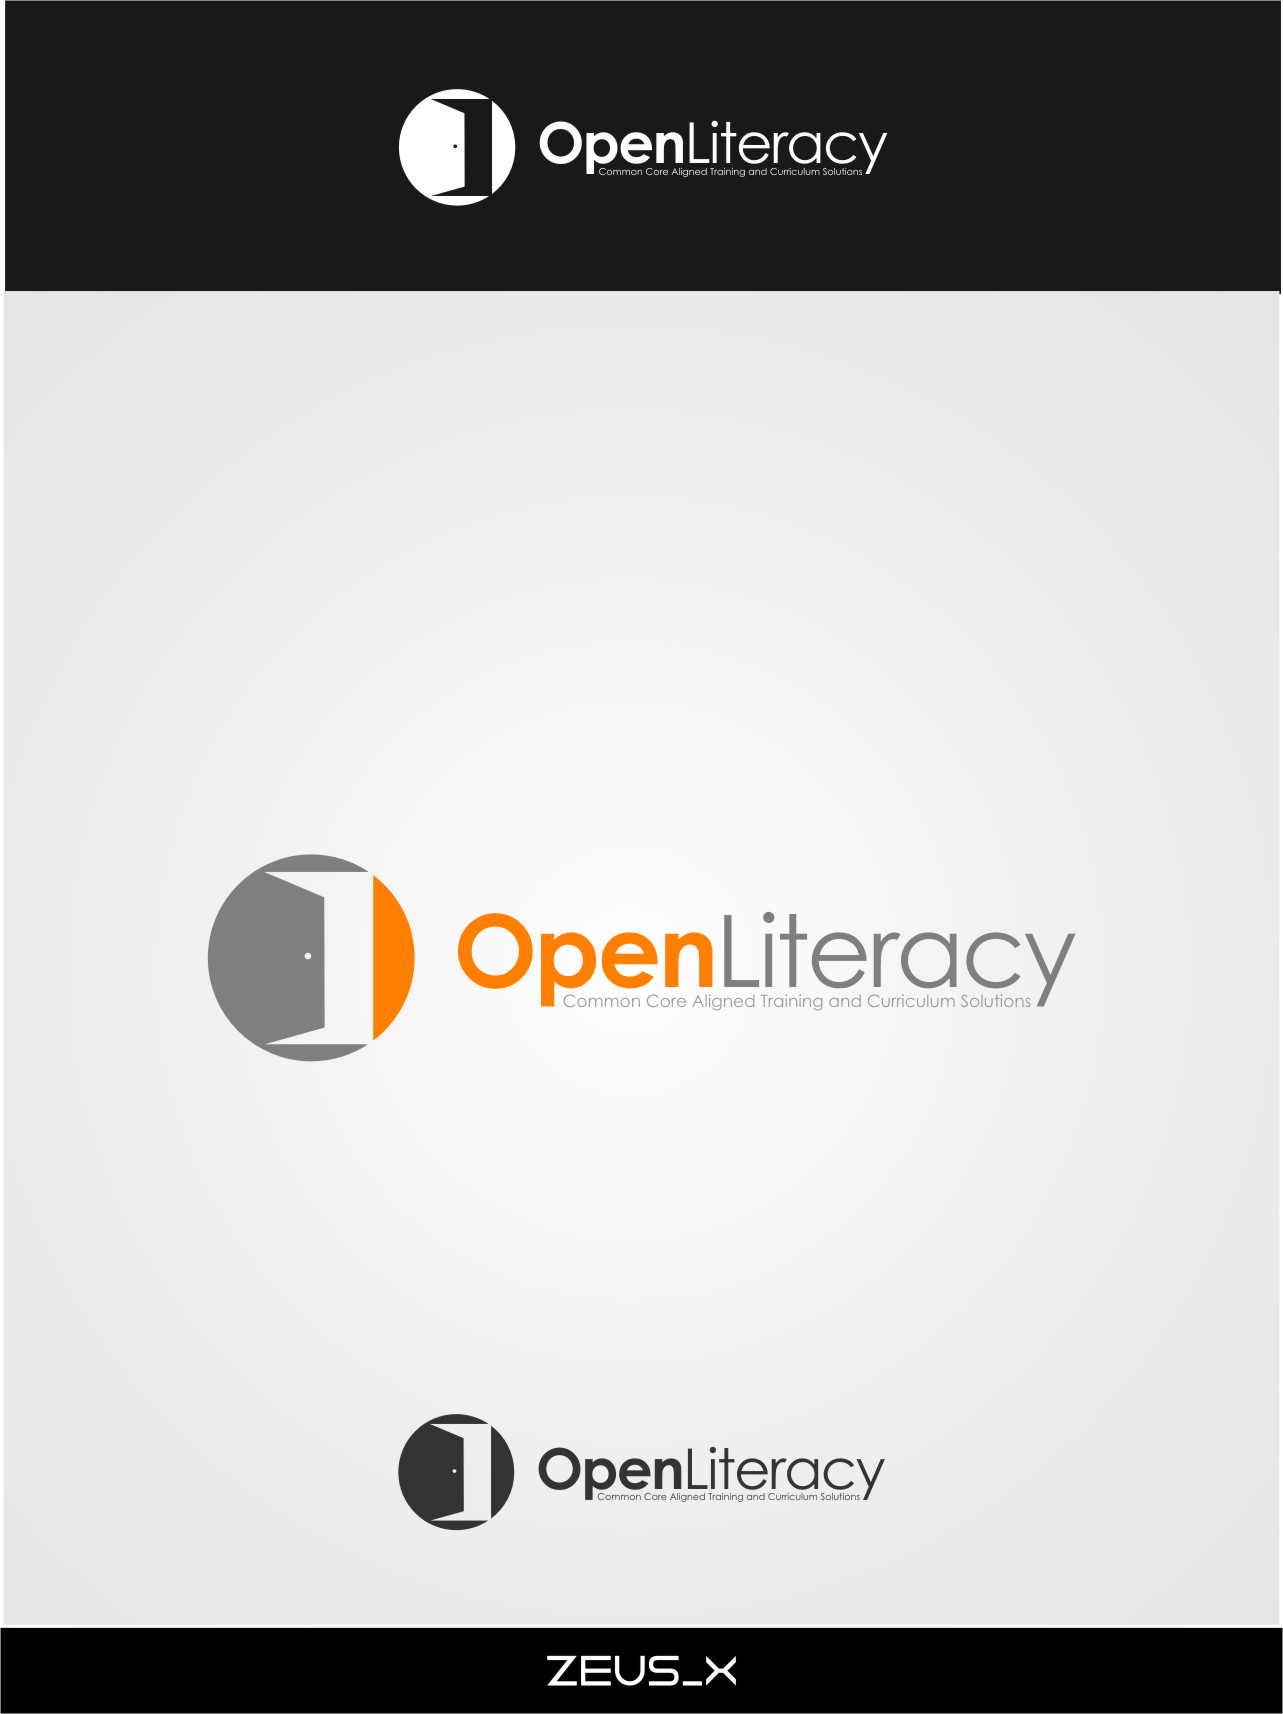 Logo Design by Ngepet_art - Entry No. 145 in the Logo Design Contest Inspiring Logo Design for OpenLiteracy.